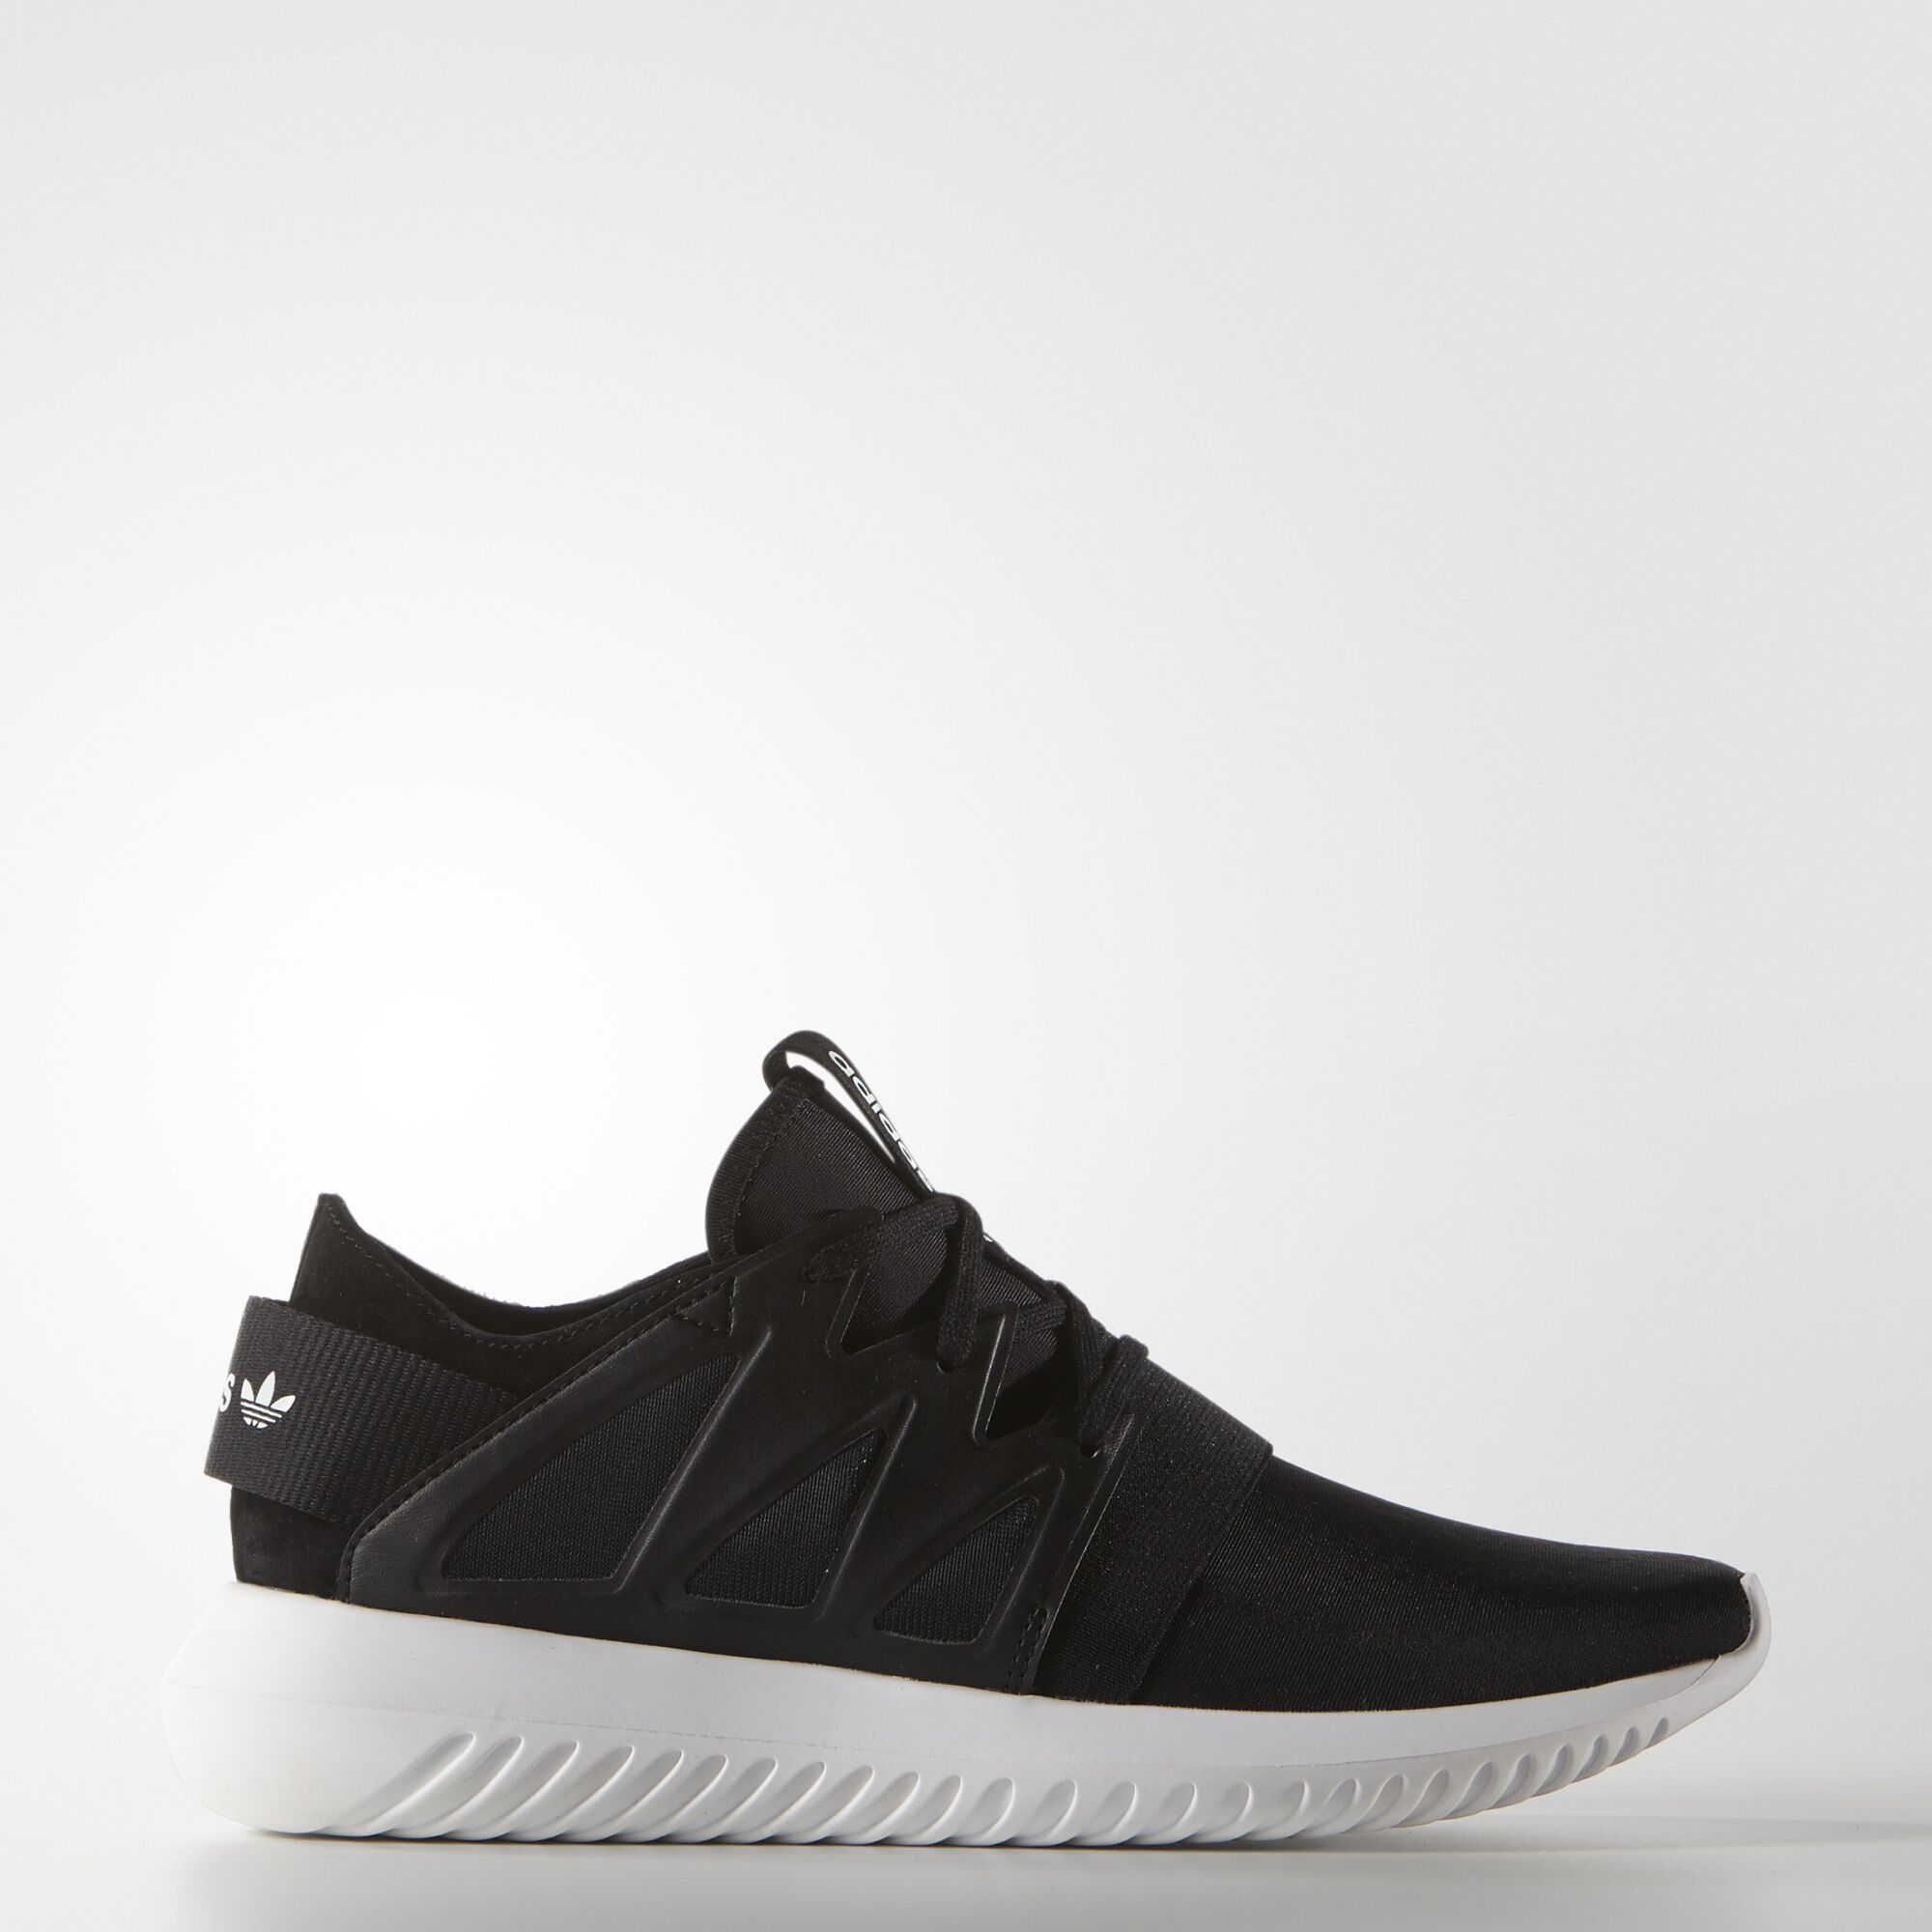 Adidas Tubular Doom Black / Vintage White / Available Now Yeezys